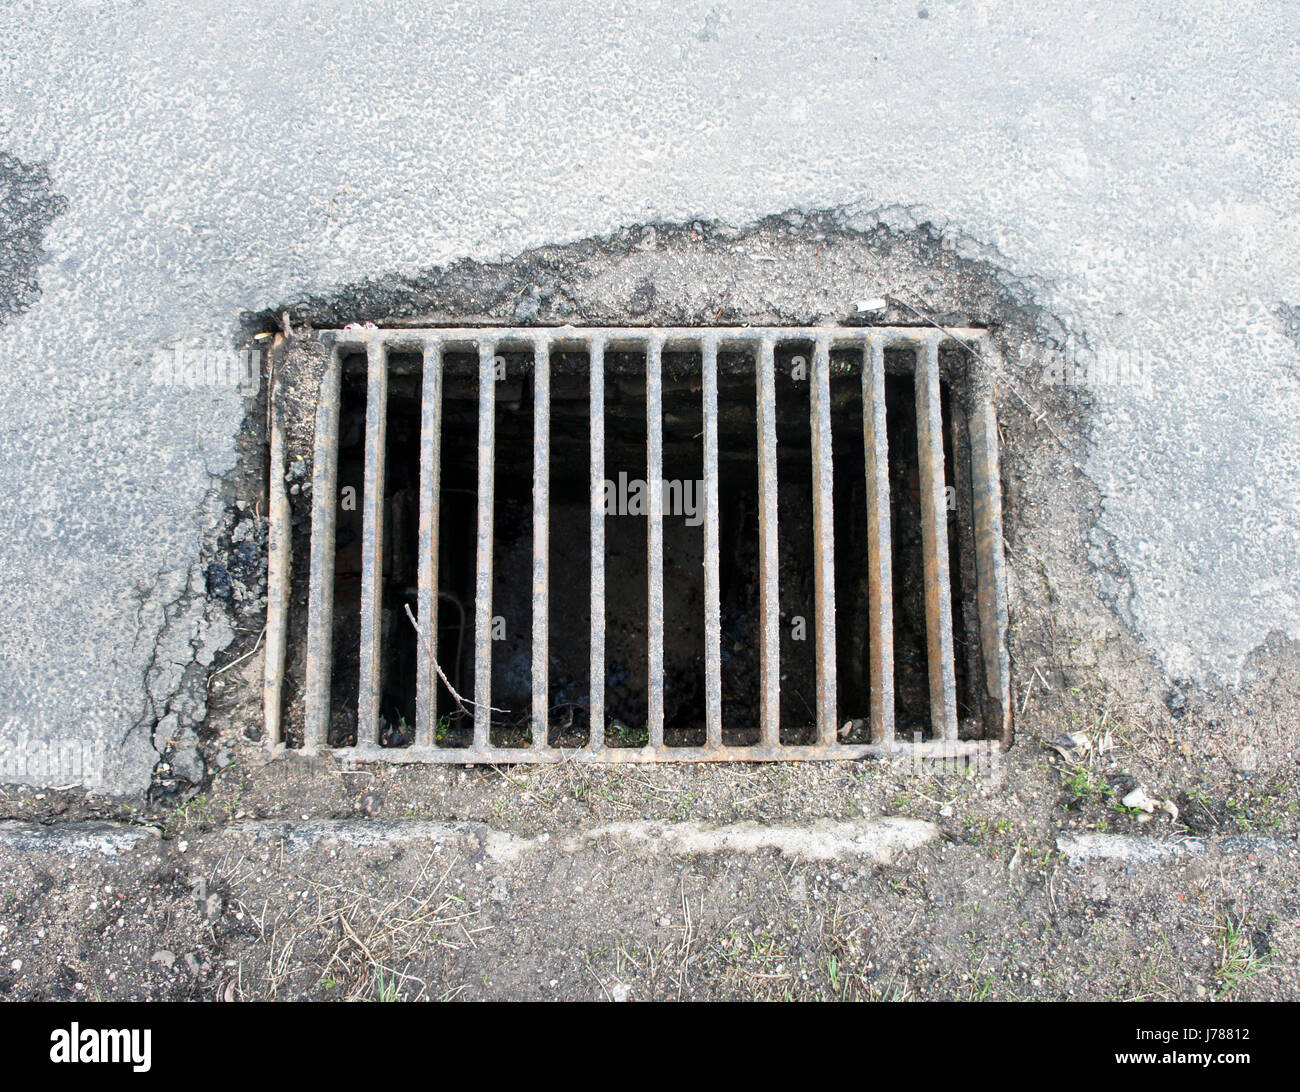 sewer grate - Stock Image